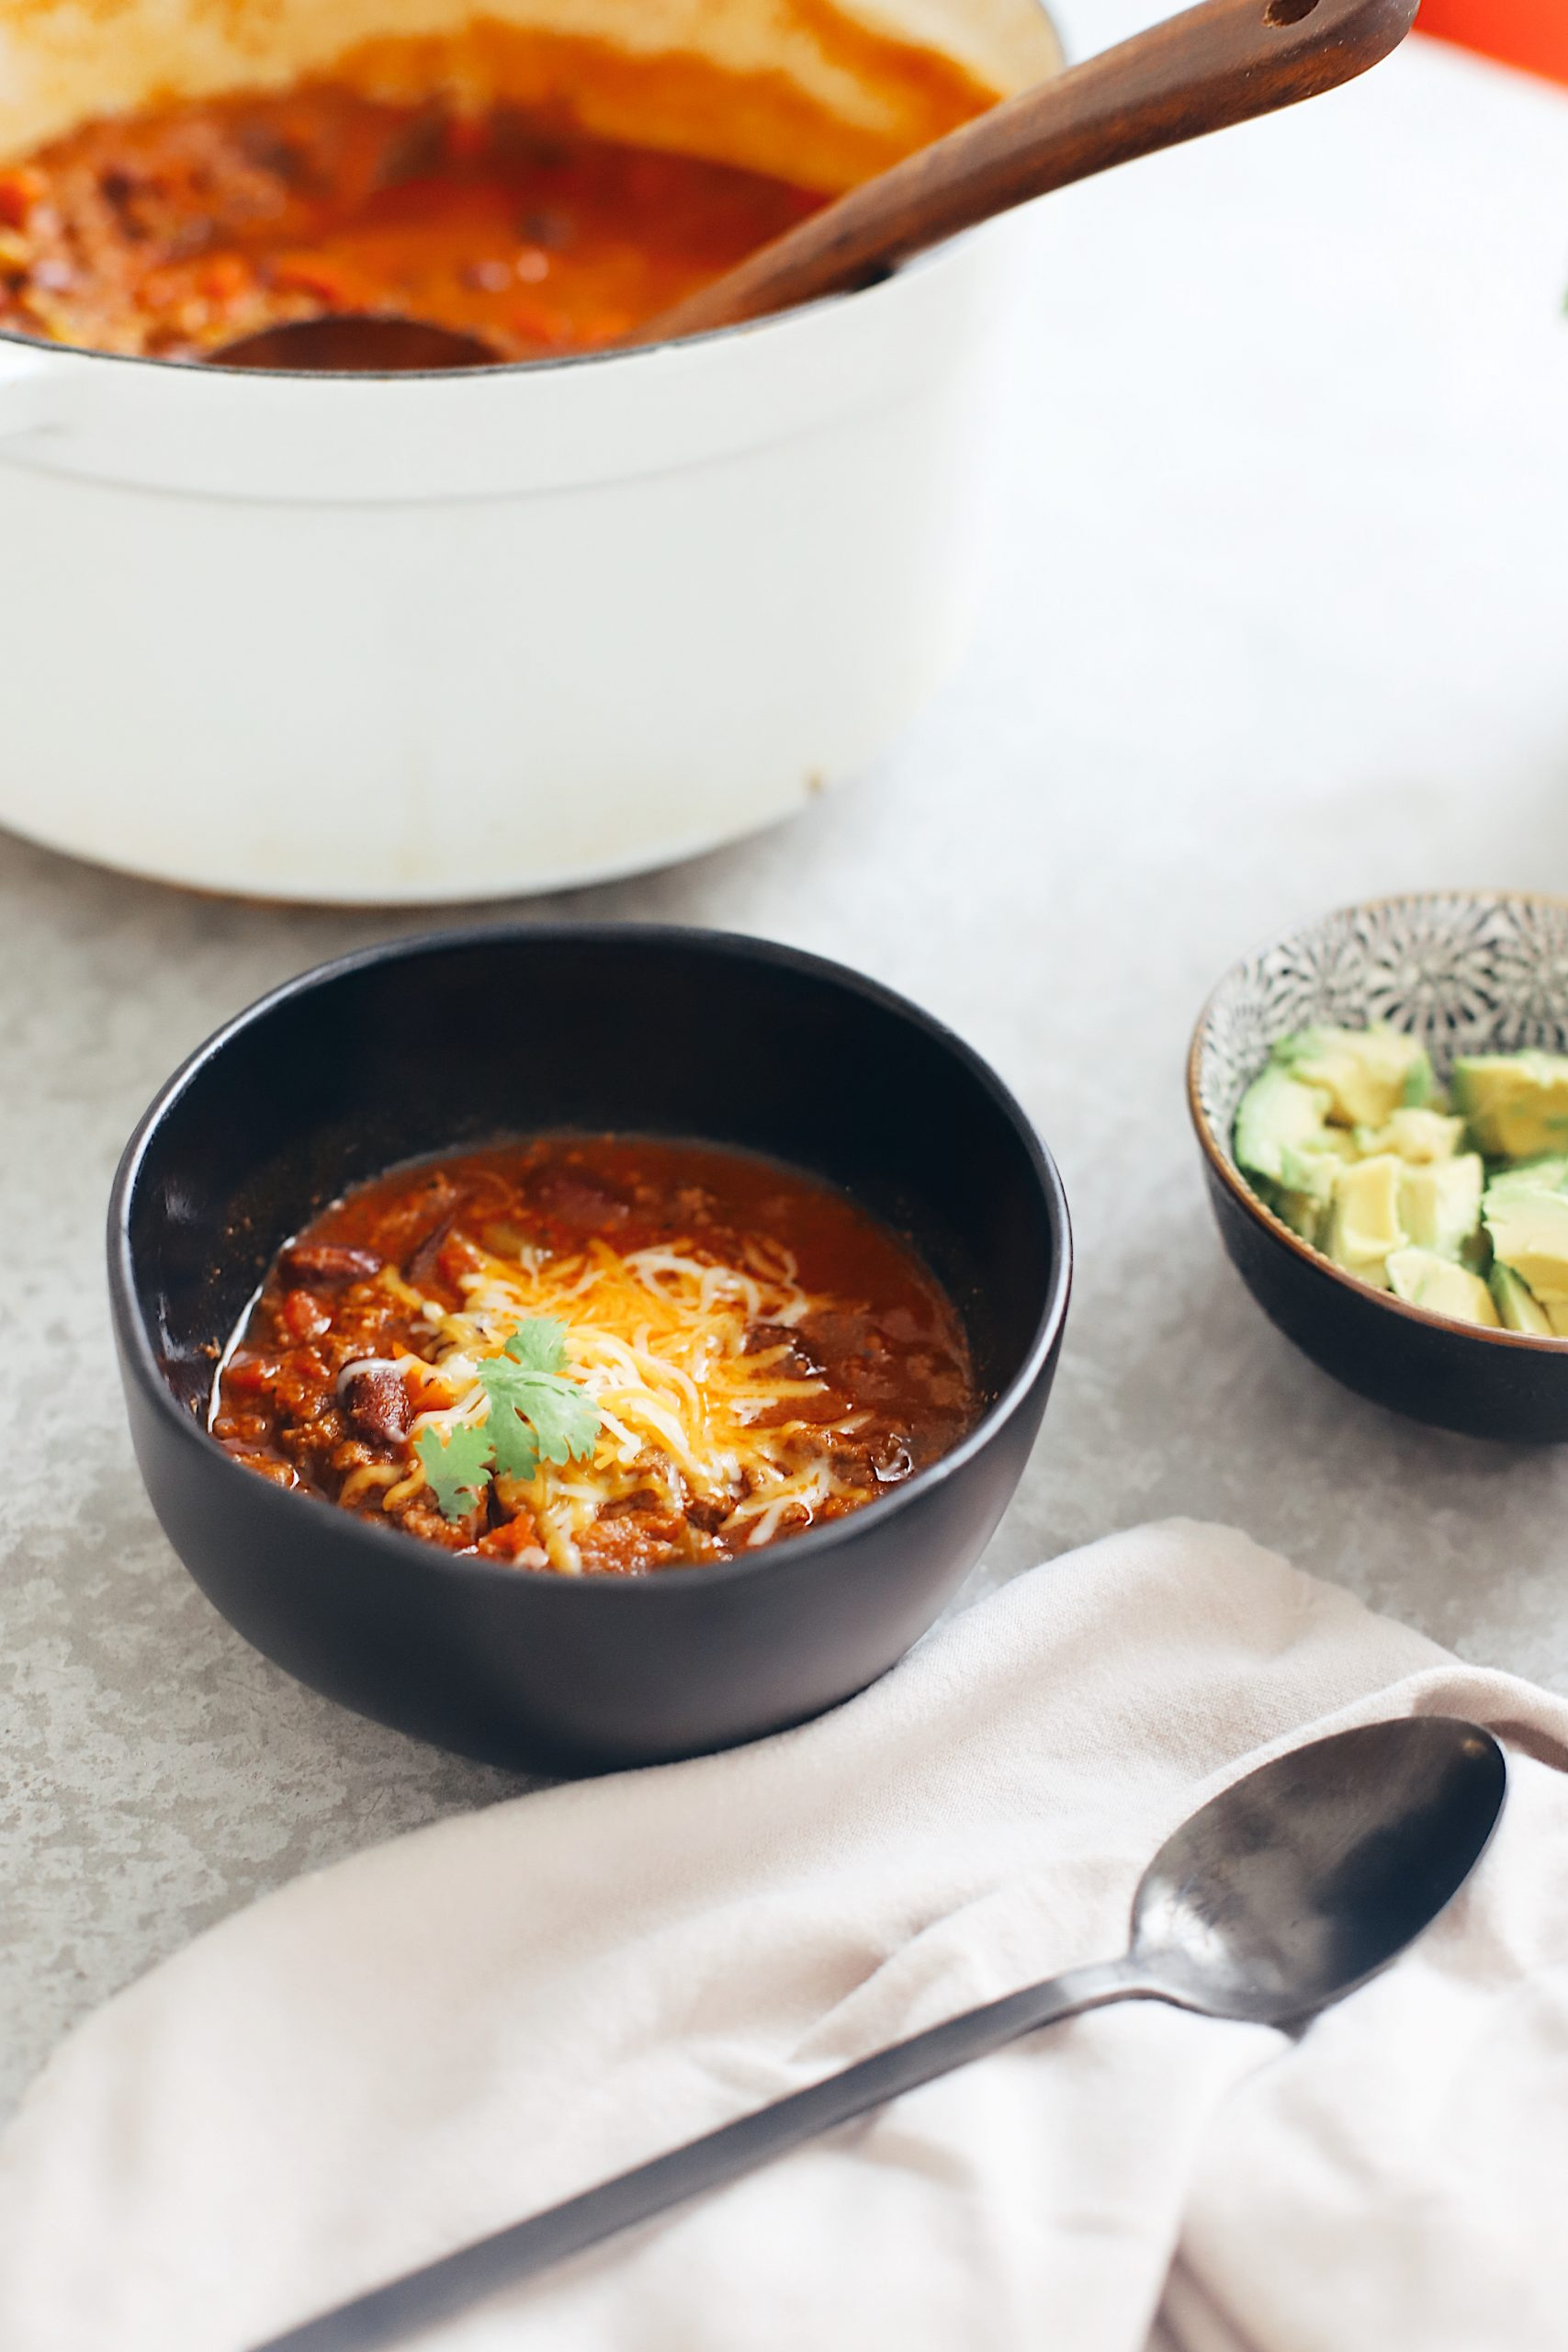 Easy Family Favorite Chili recipe! Make this delicious classic homemade chili in the crockpot or in one pot easily. It's THE BEST CHILI, and my family asks me to make it over and over. | Chili Recipe by popular Florida lifestyle blog, Fresh Mommy Blog: image of chili in a black ceramic bowl with shredded cheese on top.